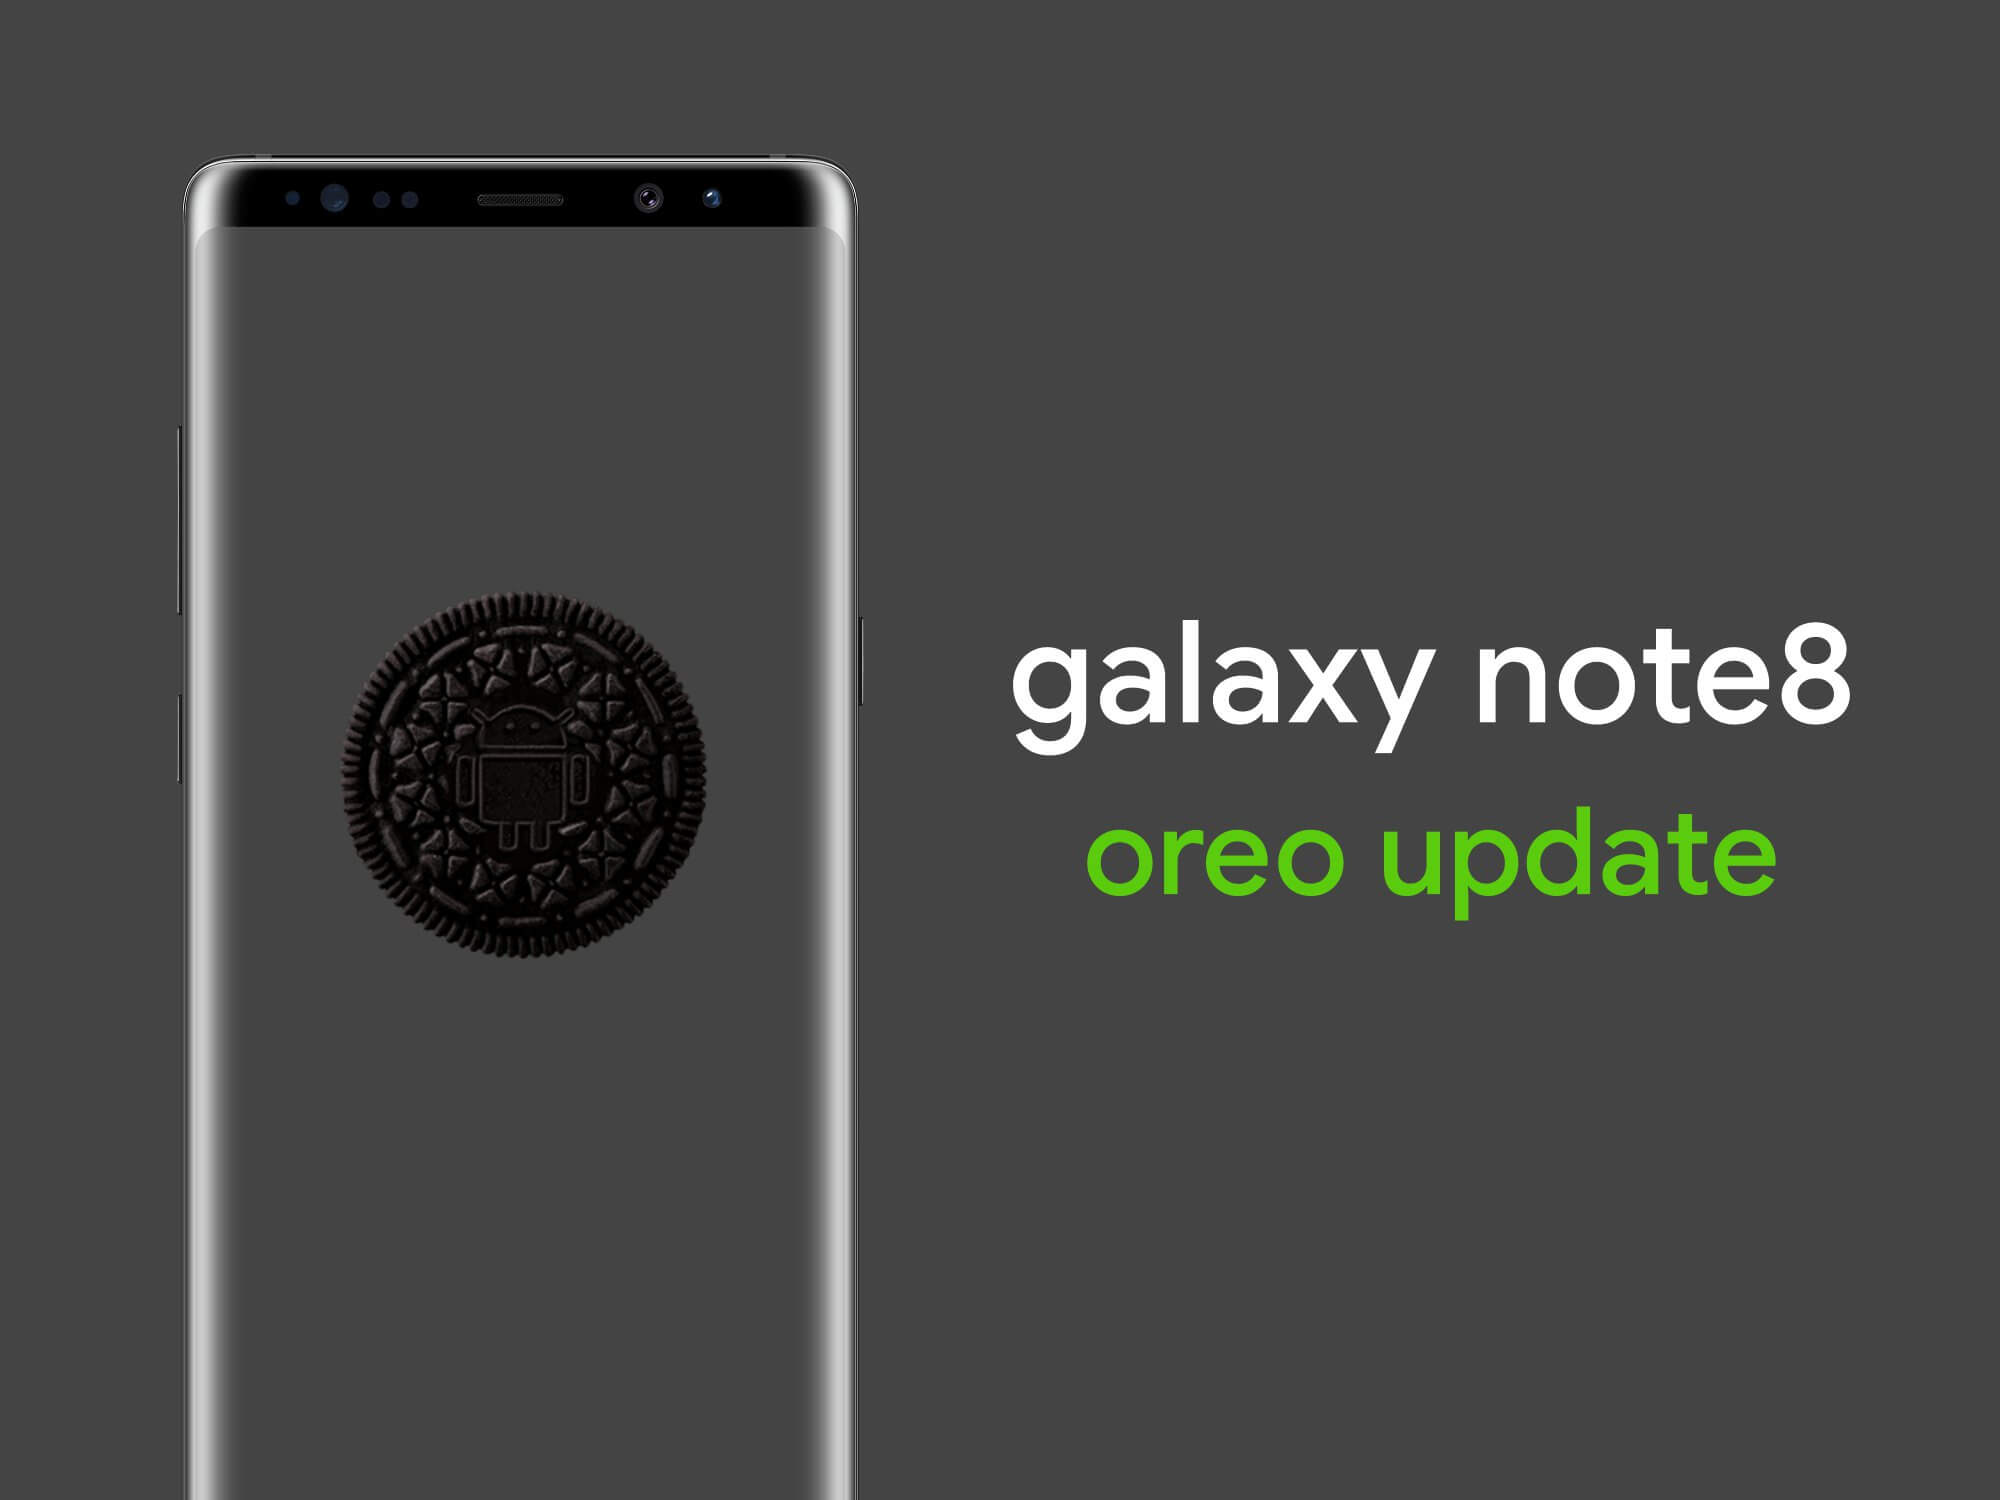 Galaxy note8 oreo update